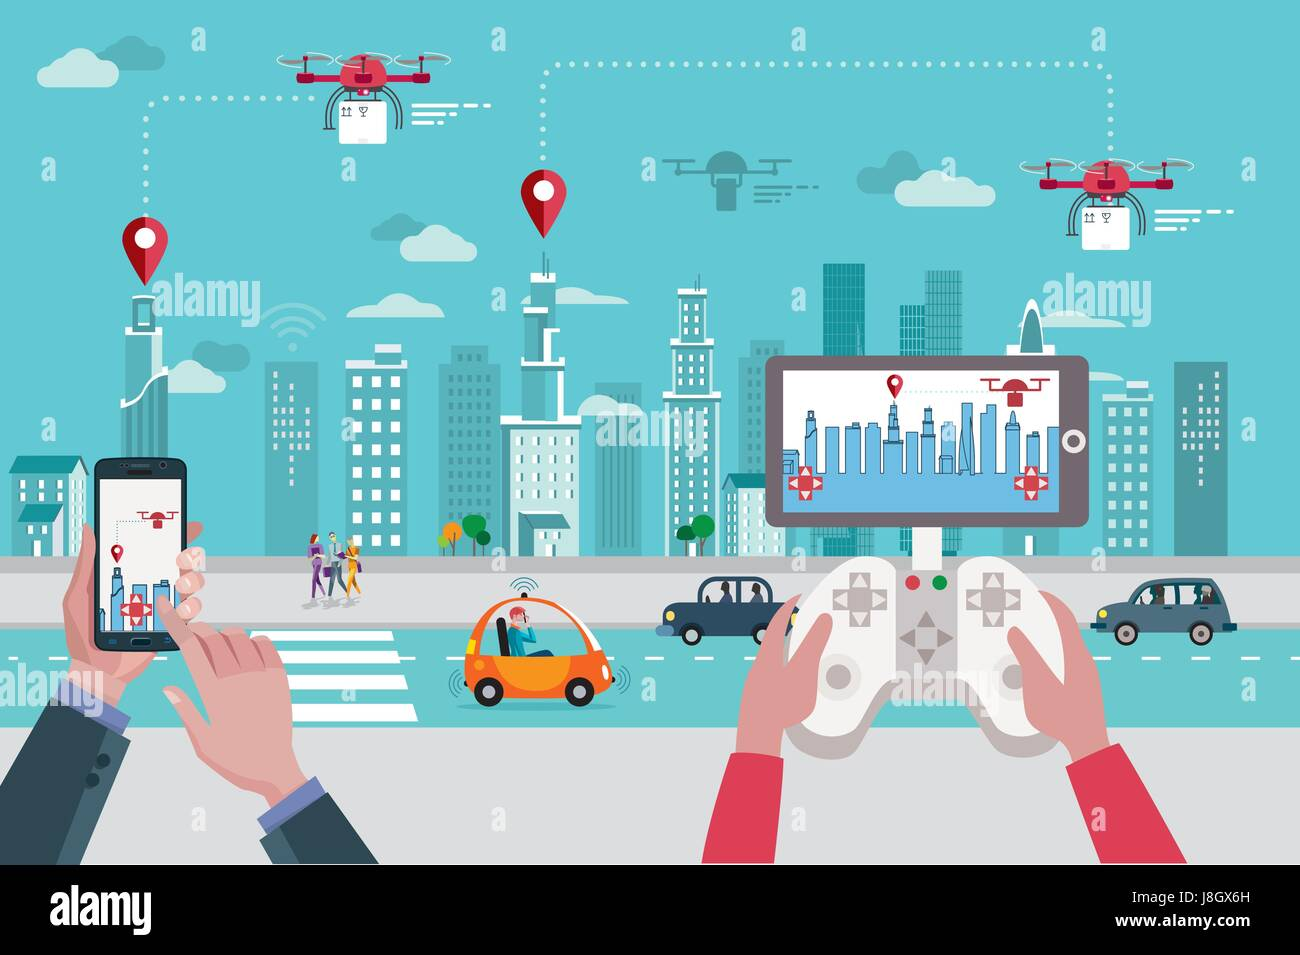 People launching drones by different remote control devices in front of the skyline of a big modern city with skyscrapers. Stock Vector